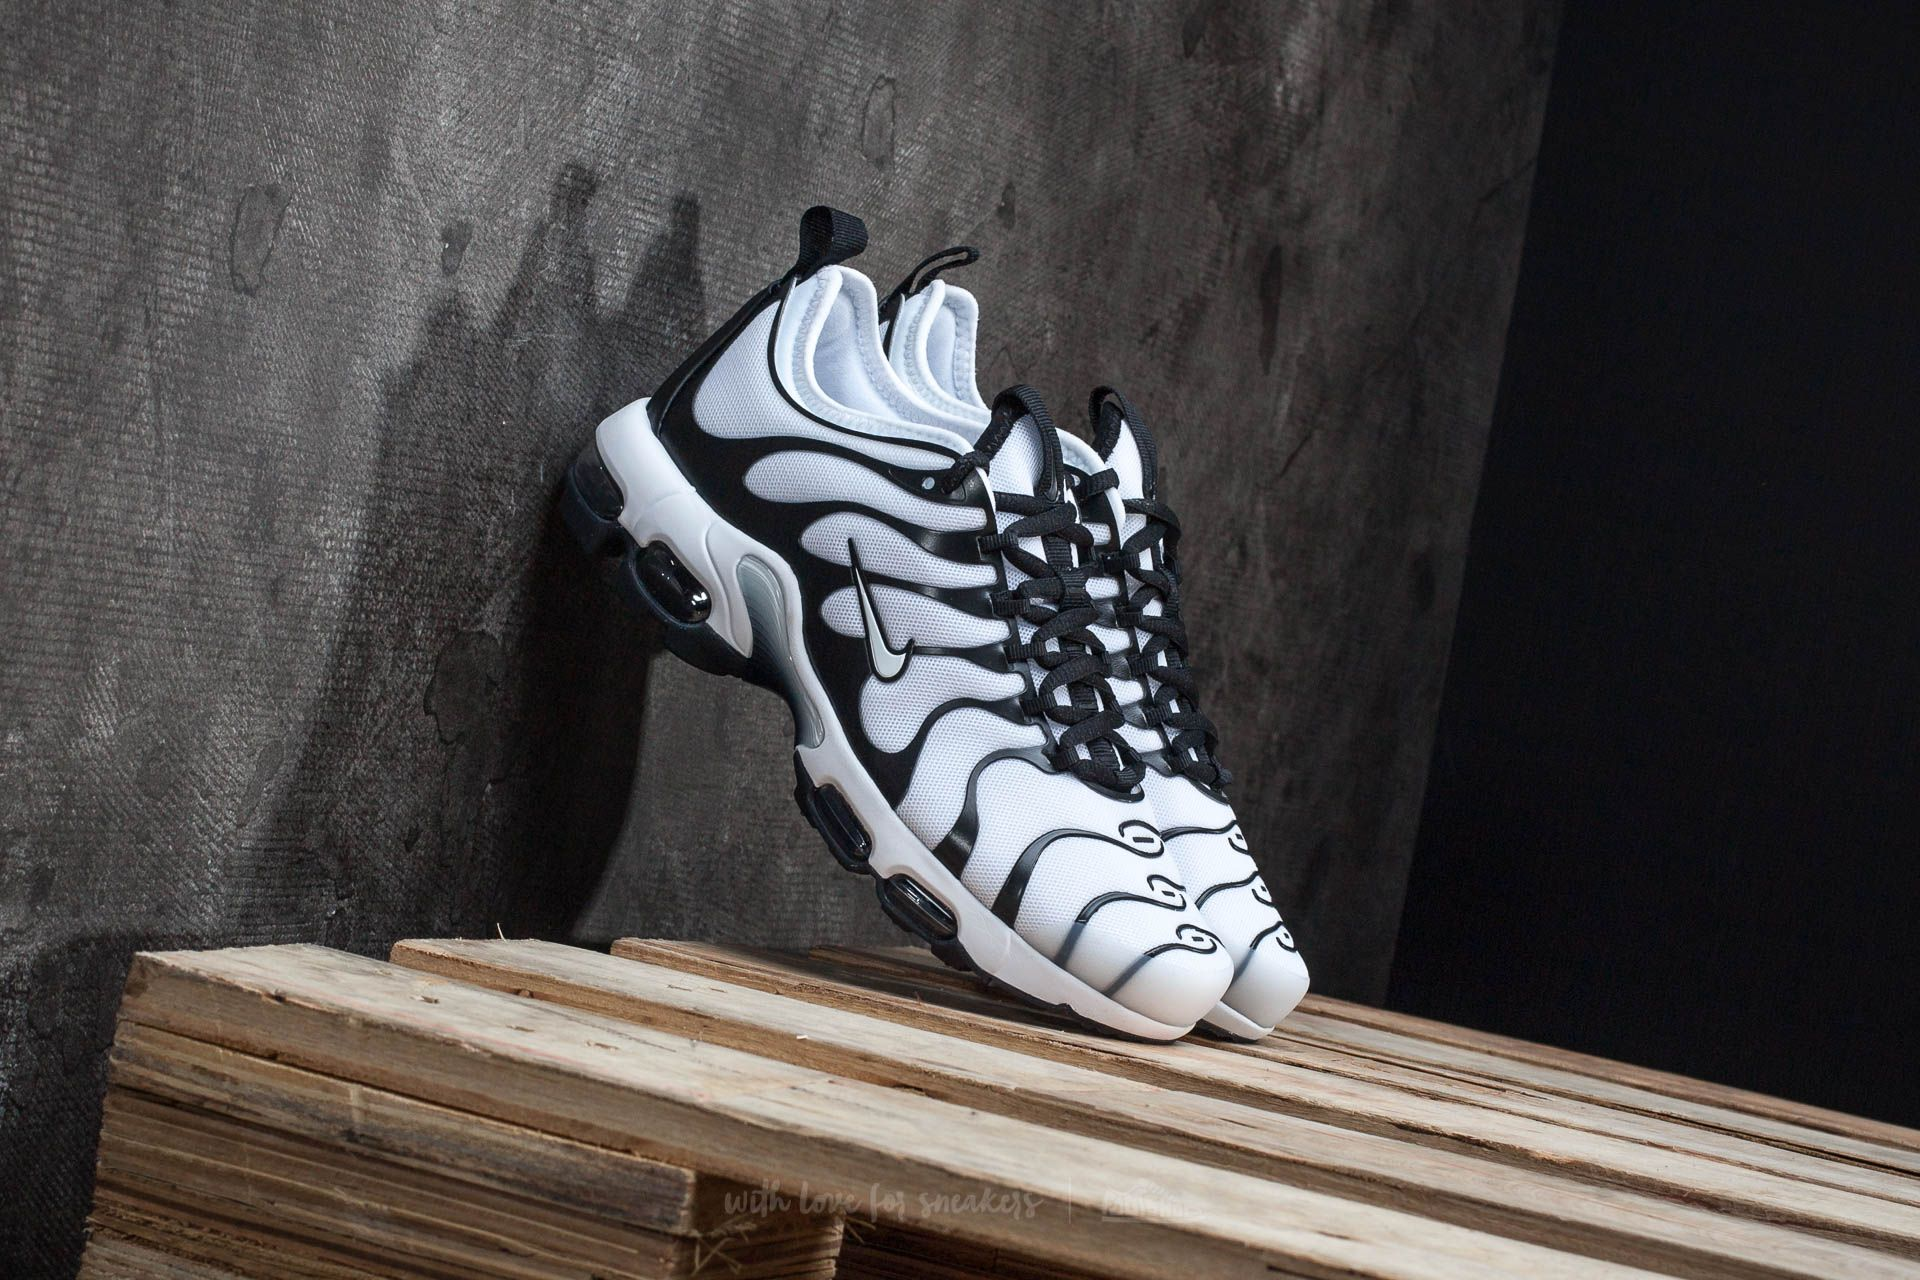 Chaussures et baskets femme Nike Wmns Air Max Plus TN Ultra White/ White-Black